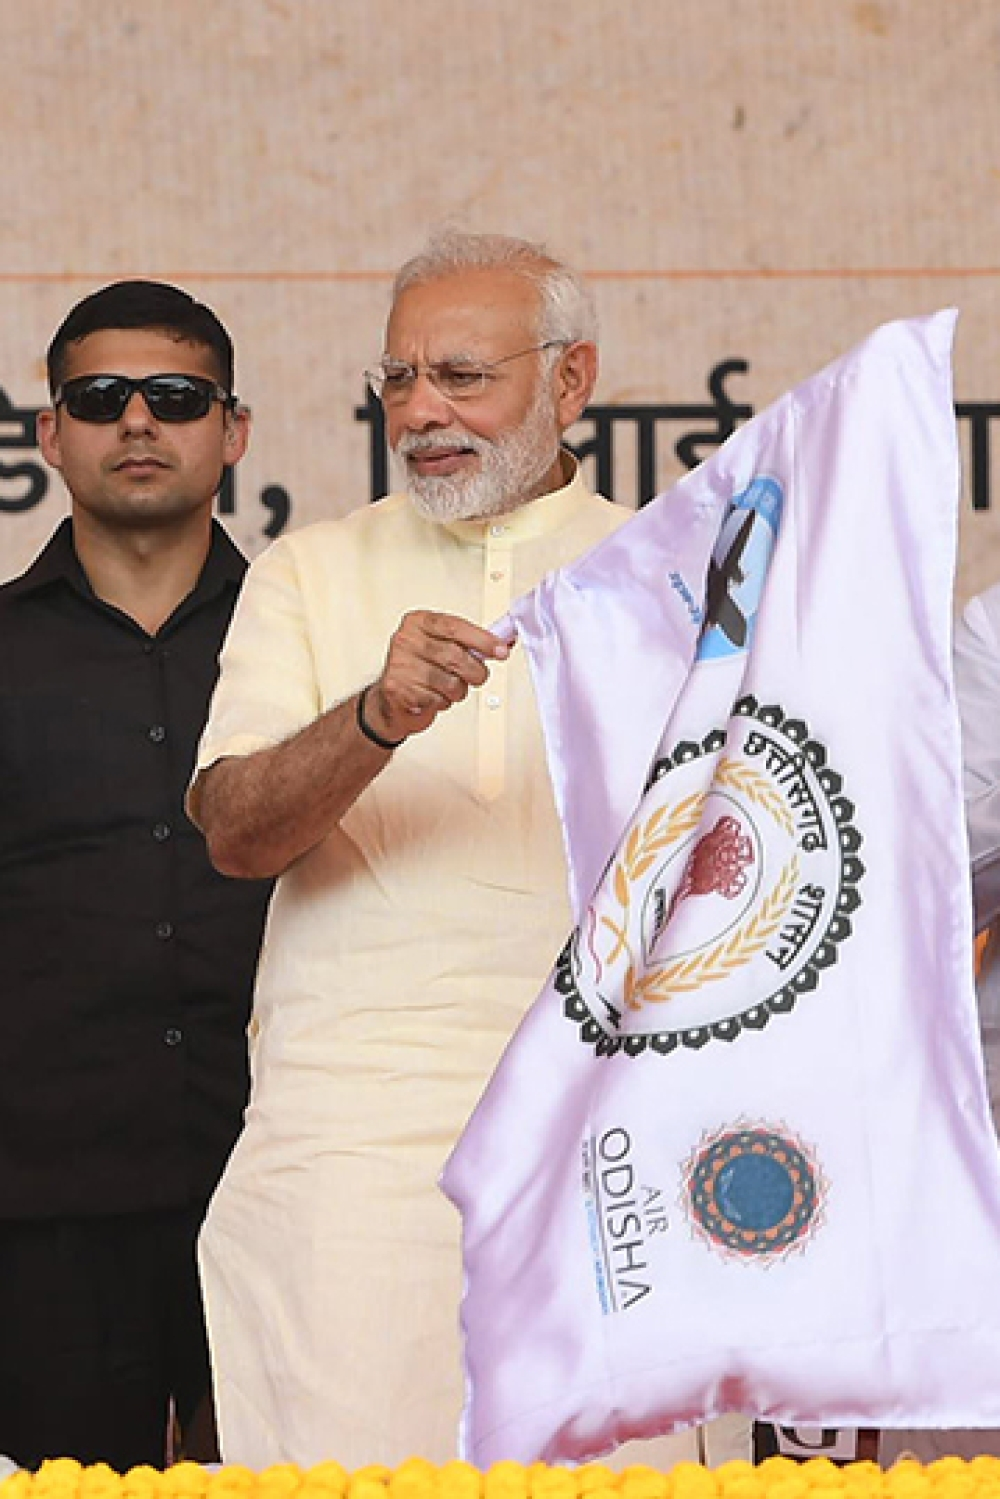 Prime Minister Narendra Modi inaugurating the air services between Jagdalpur and Raipur, at a function in Bhilai, Raipur, on June 14 (file photo)